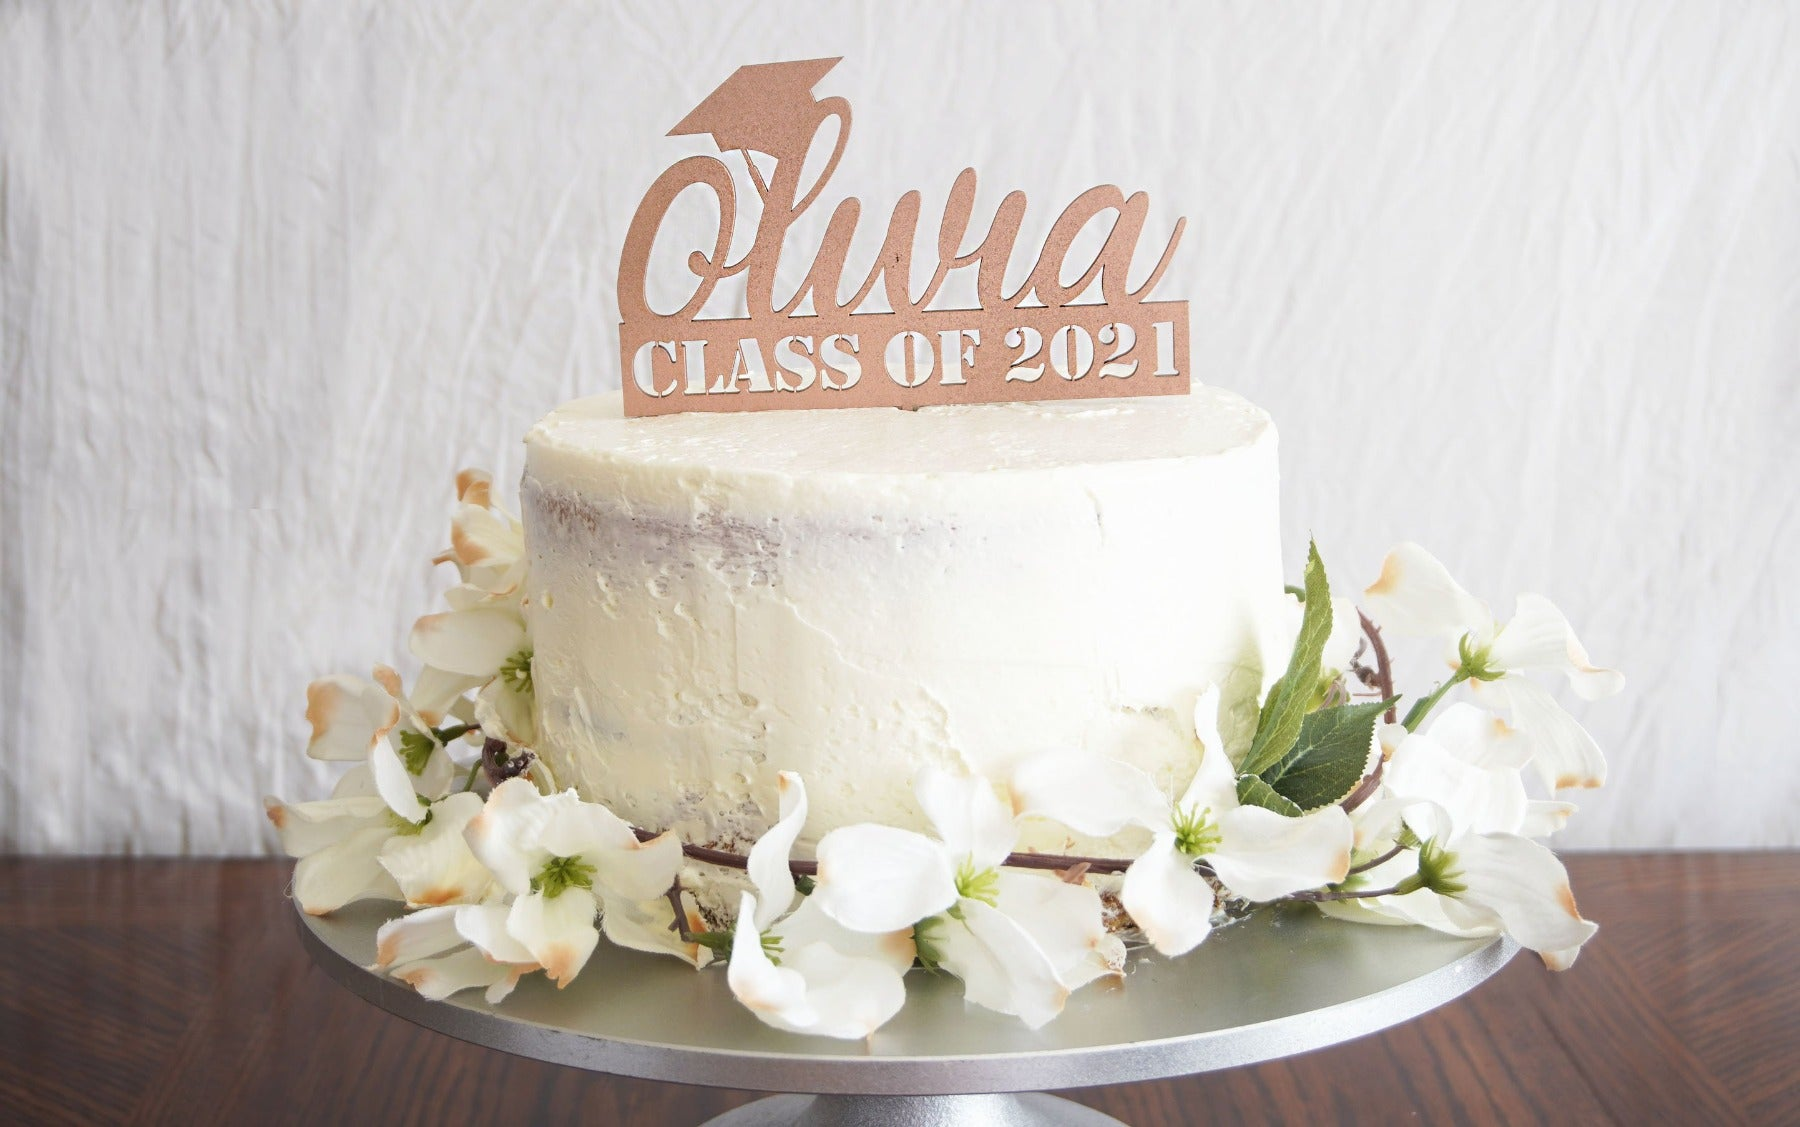 Personalized Graduation Cake Topper | Custom Congrats Class of 2021 Gift | Prom & Graduation Celebration Décor | Wood or Acrylic, Cake Toppers, designLEE Studio, designLEE Studio